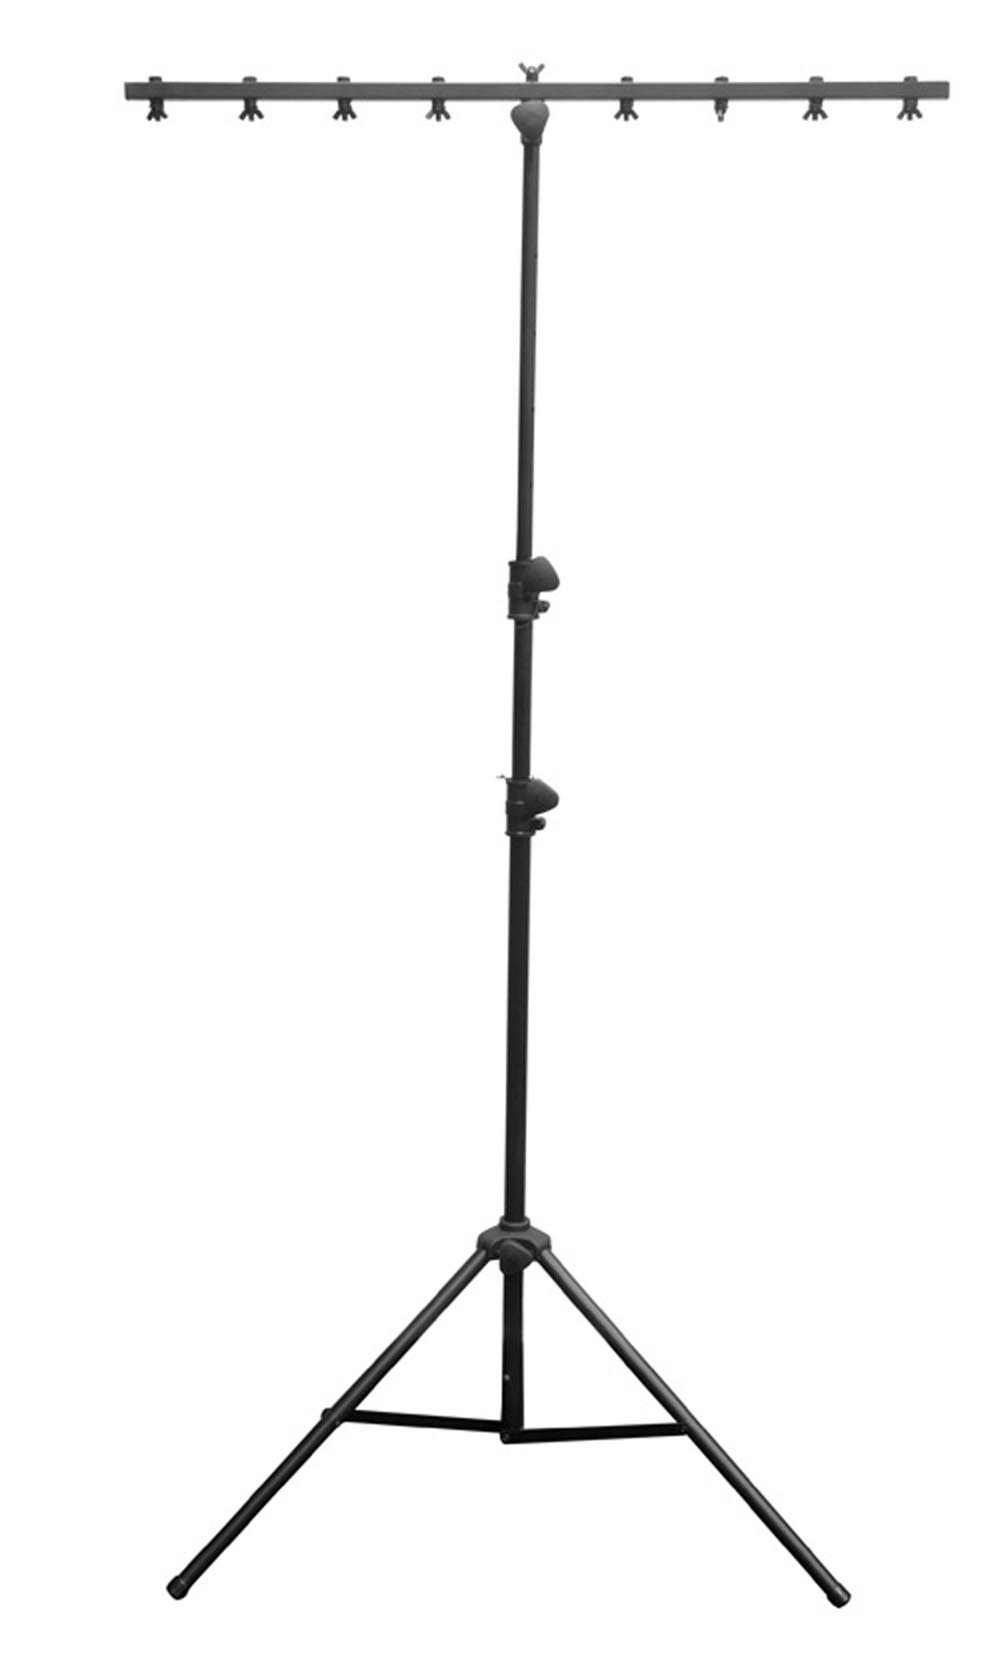 New! Chauvet DJ CH-06 Portable Lightweight Easy Setup T Bar Tripod Light Stand by